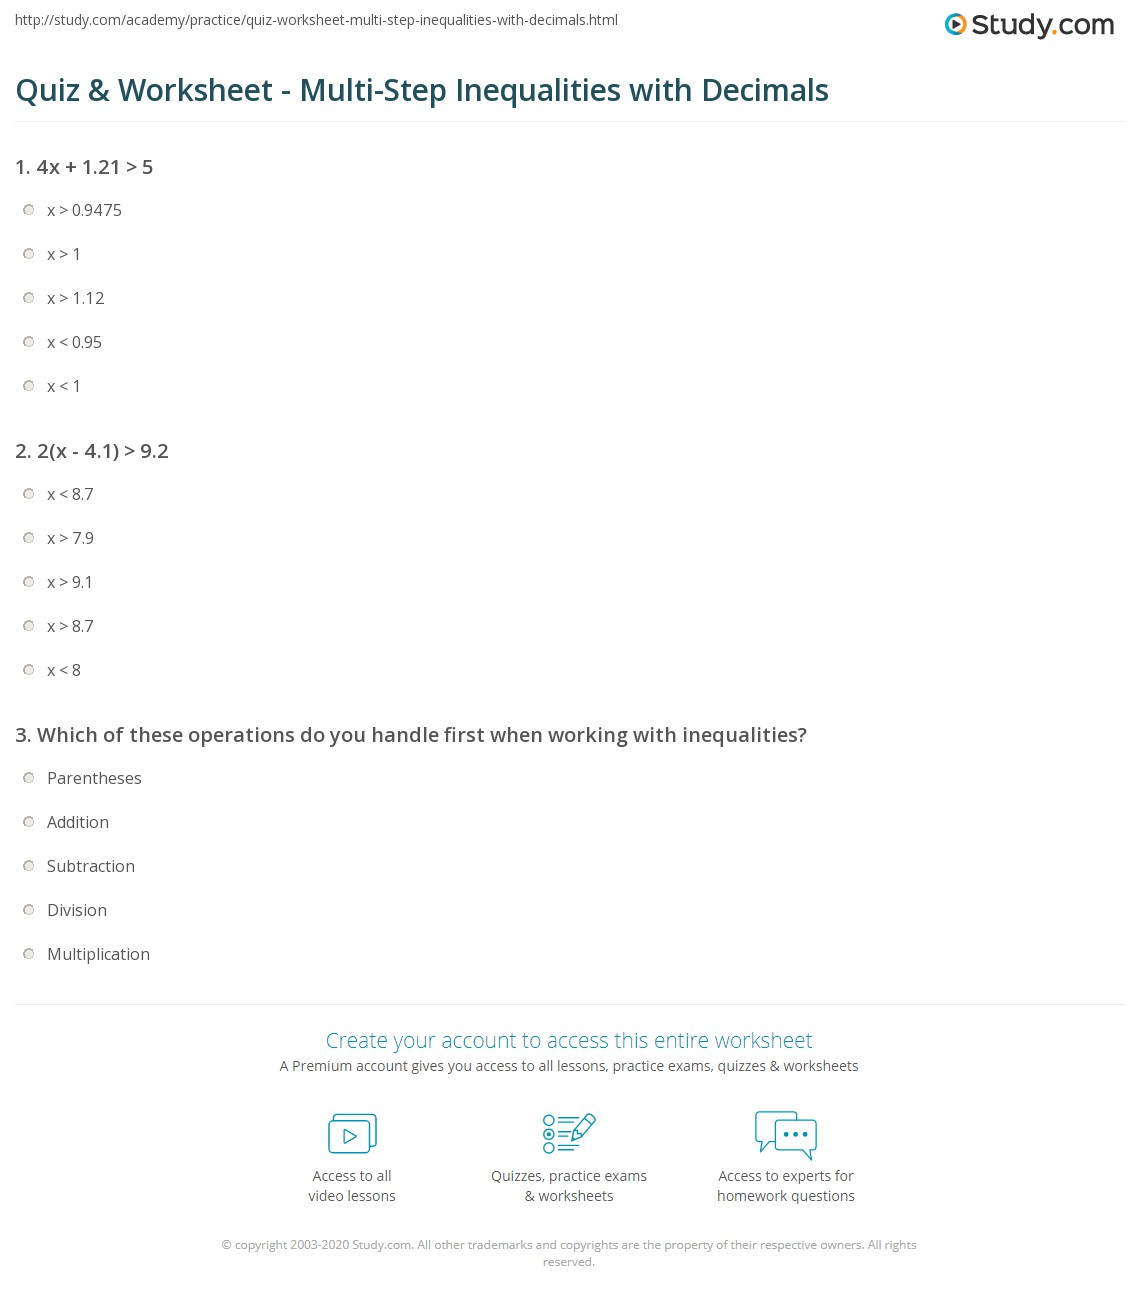 Print Solving Multi-Step Inequalities with Decimals Worksheet